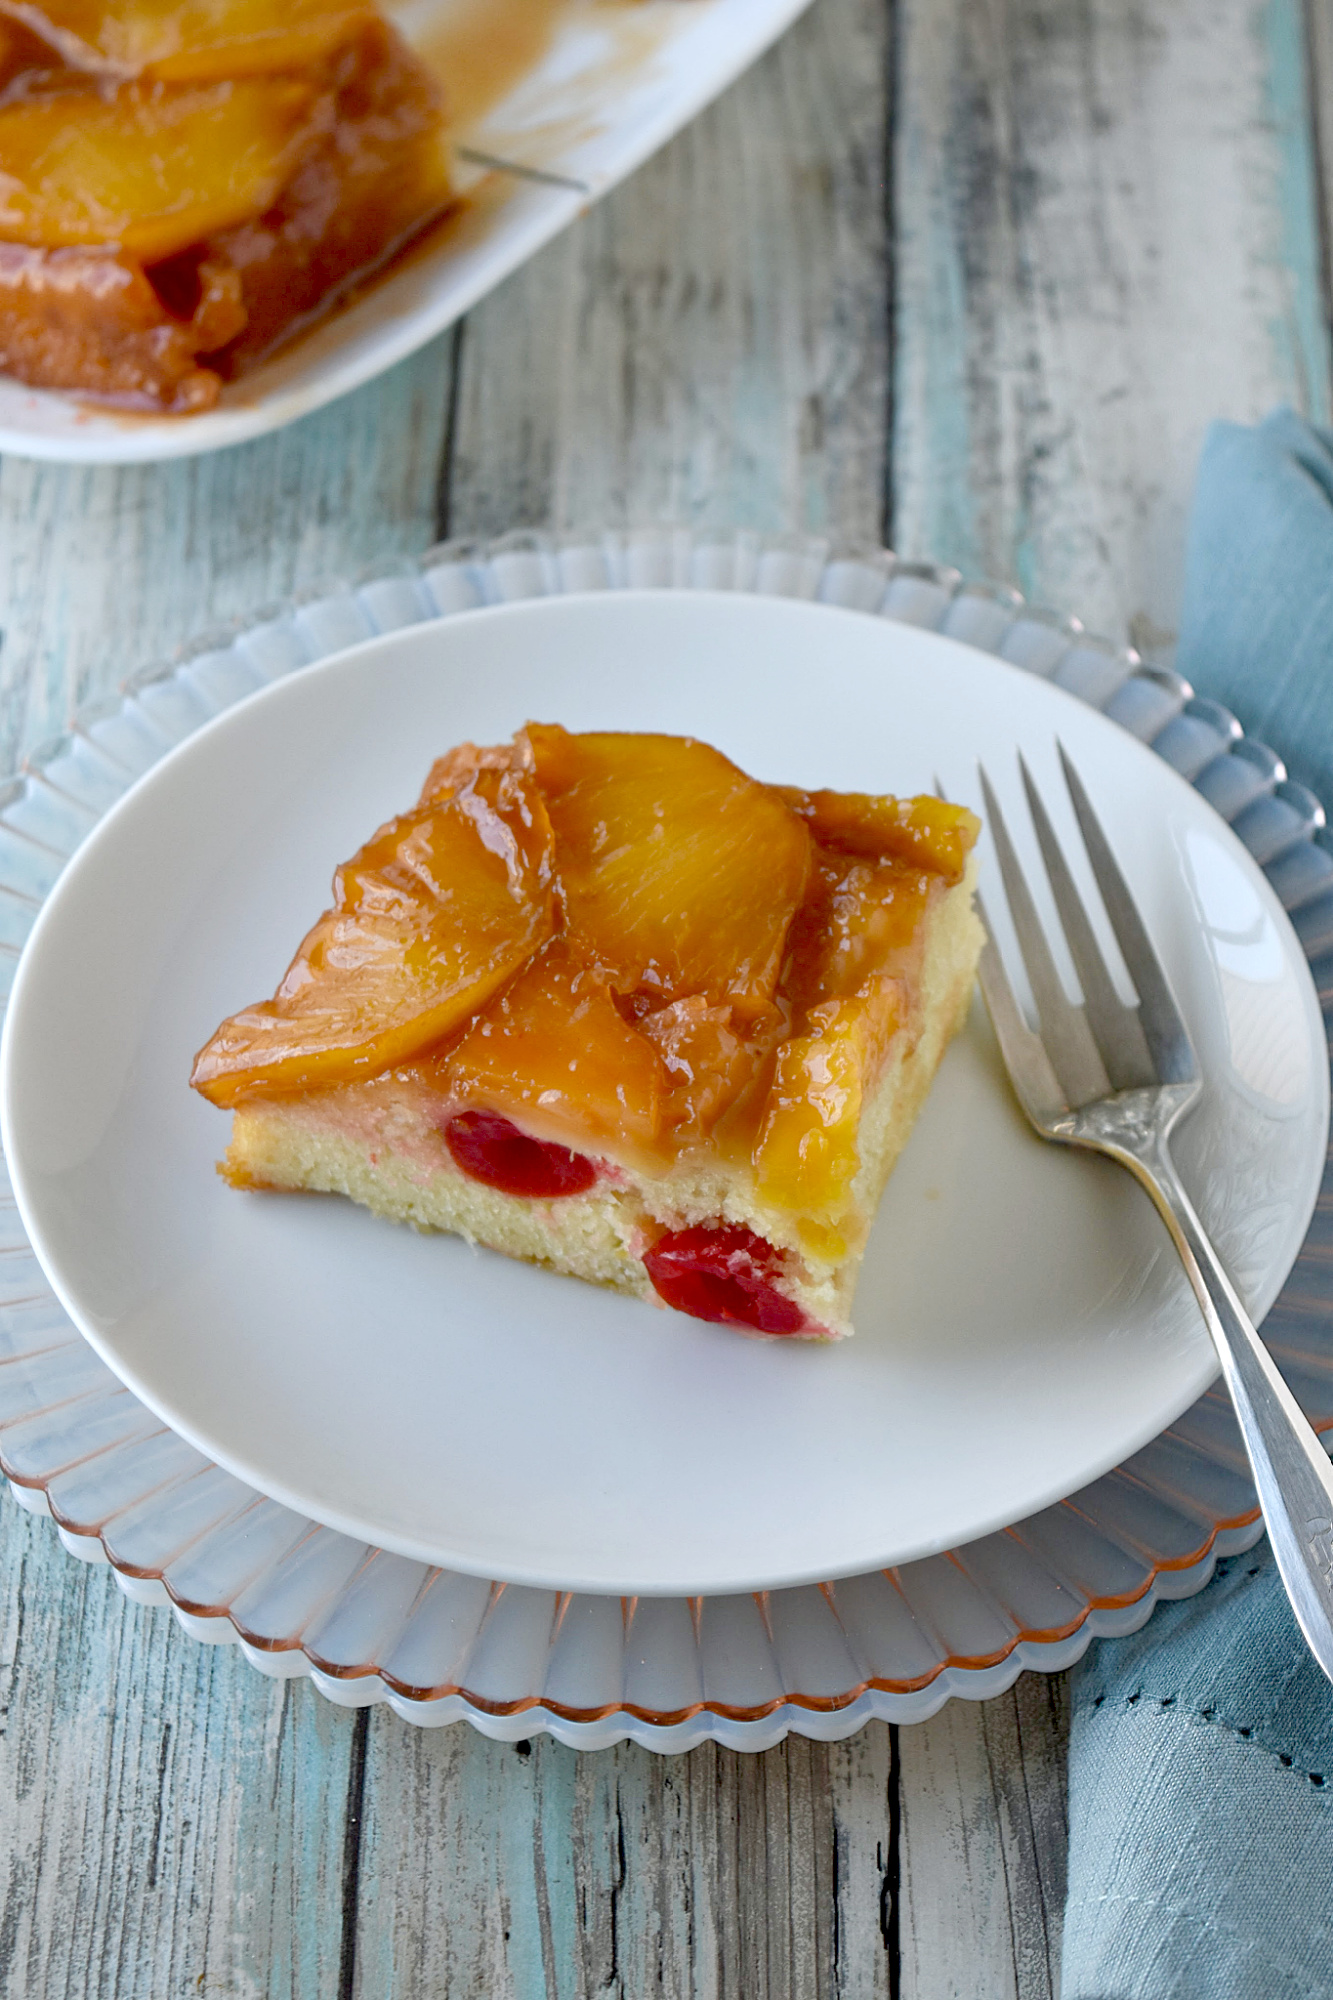 Fresh Pineapple Upside Down Cake has fresh, sweet t on top hand light and moist cake underneath. It's a simple and quick cake that bakes up easily. #SpringSweetsWeek